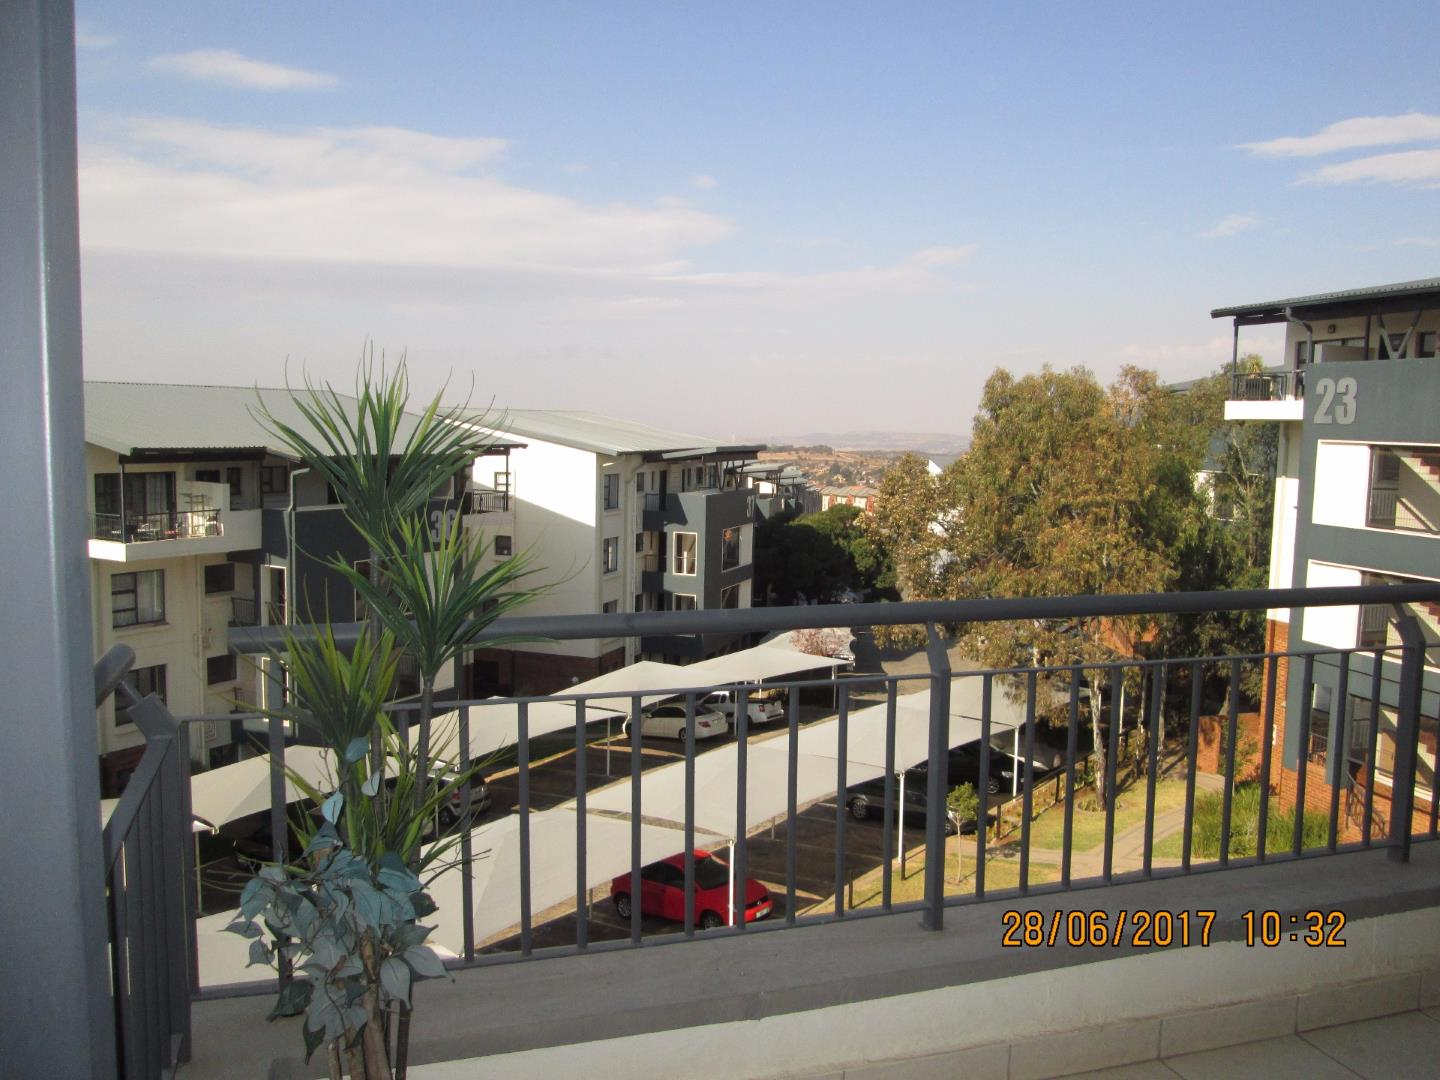 Johannesburg, Glenanda Property  | Houses For Sale Glenanda, Glenanda, Apartment 2 bedrooms property for sale Price:1,050,000